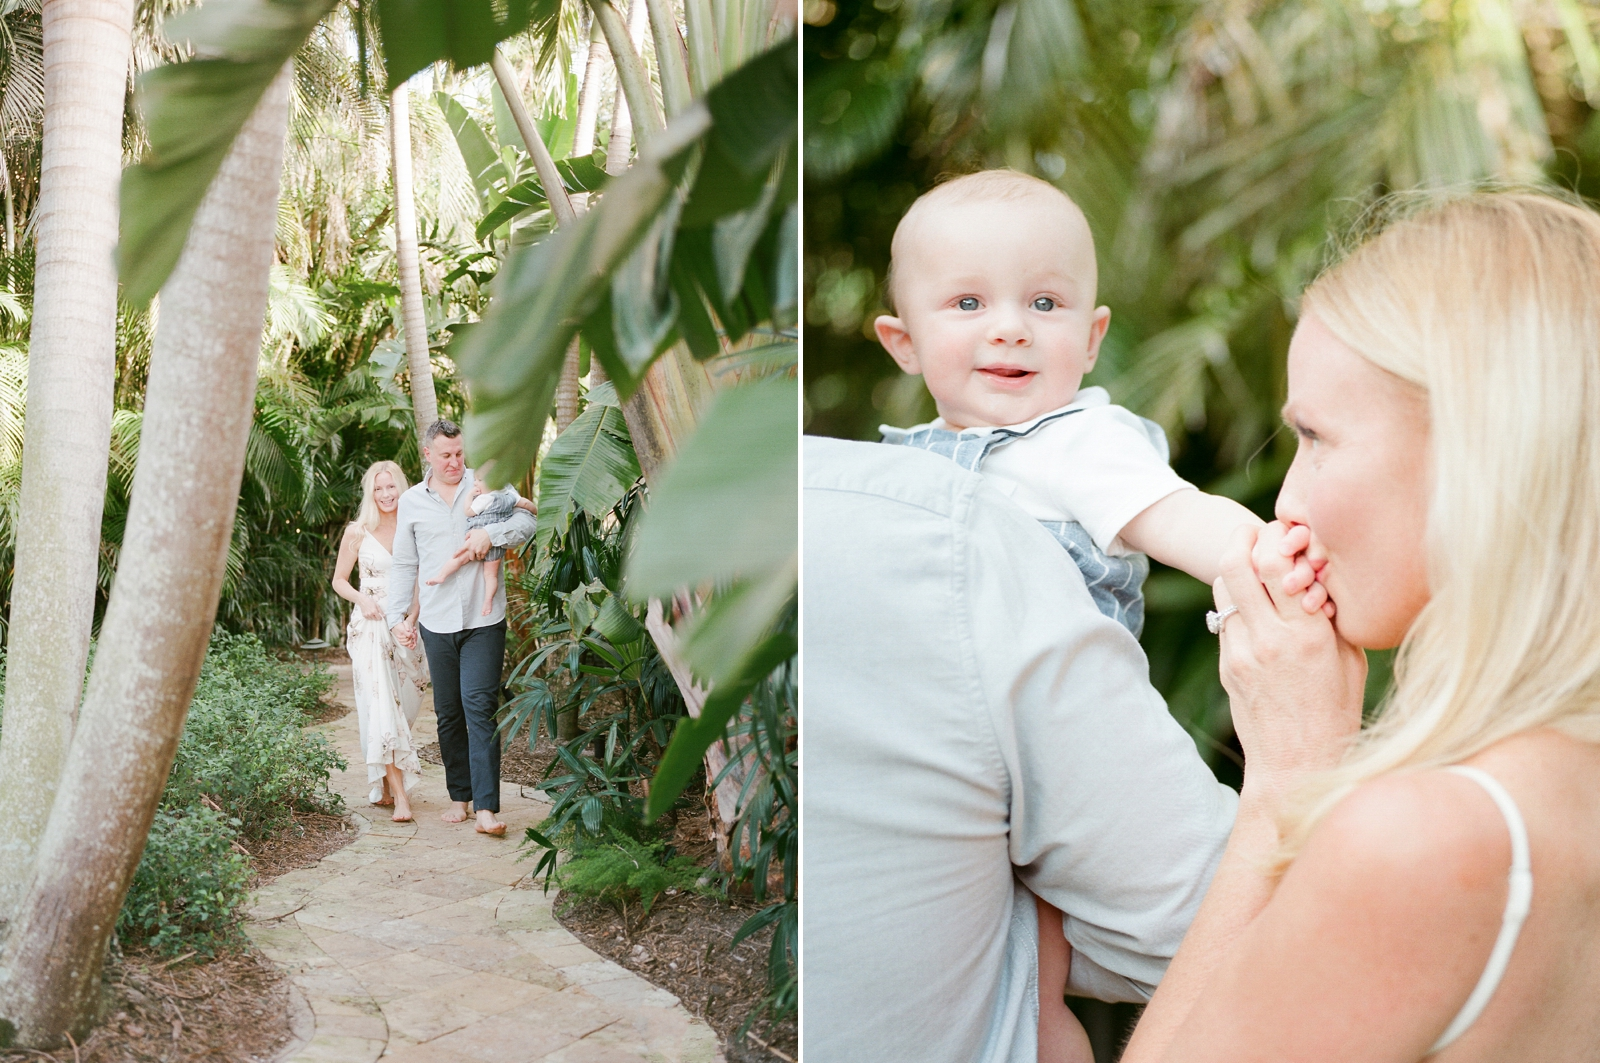 admirals_cove_jupiter_family_photographer_jupiter_beach_shannon_griffin_0006.jpg